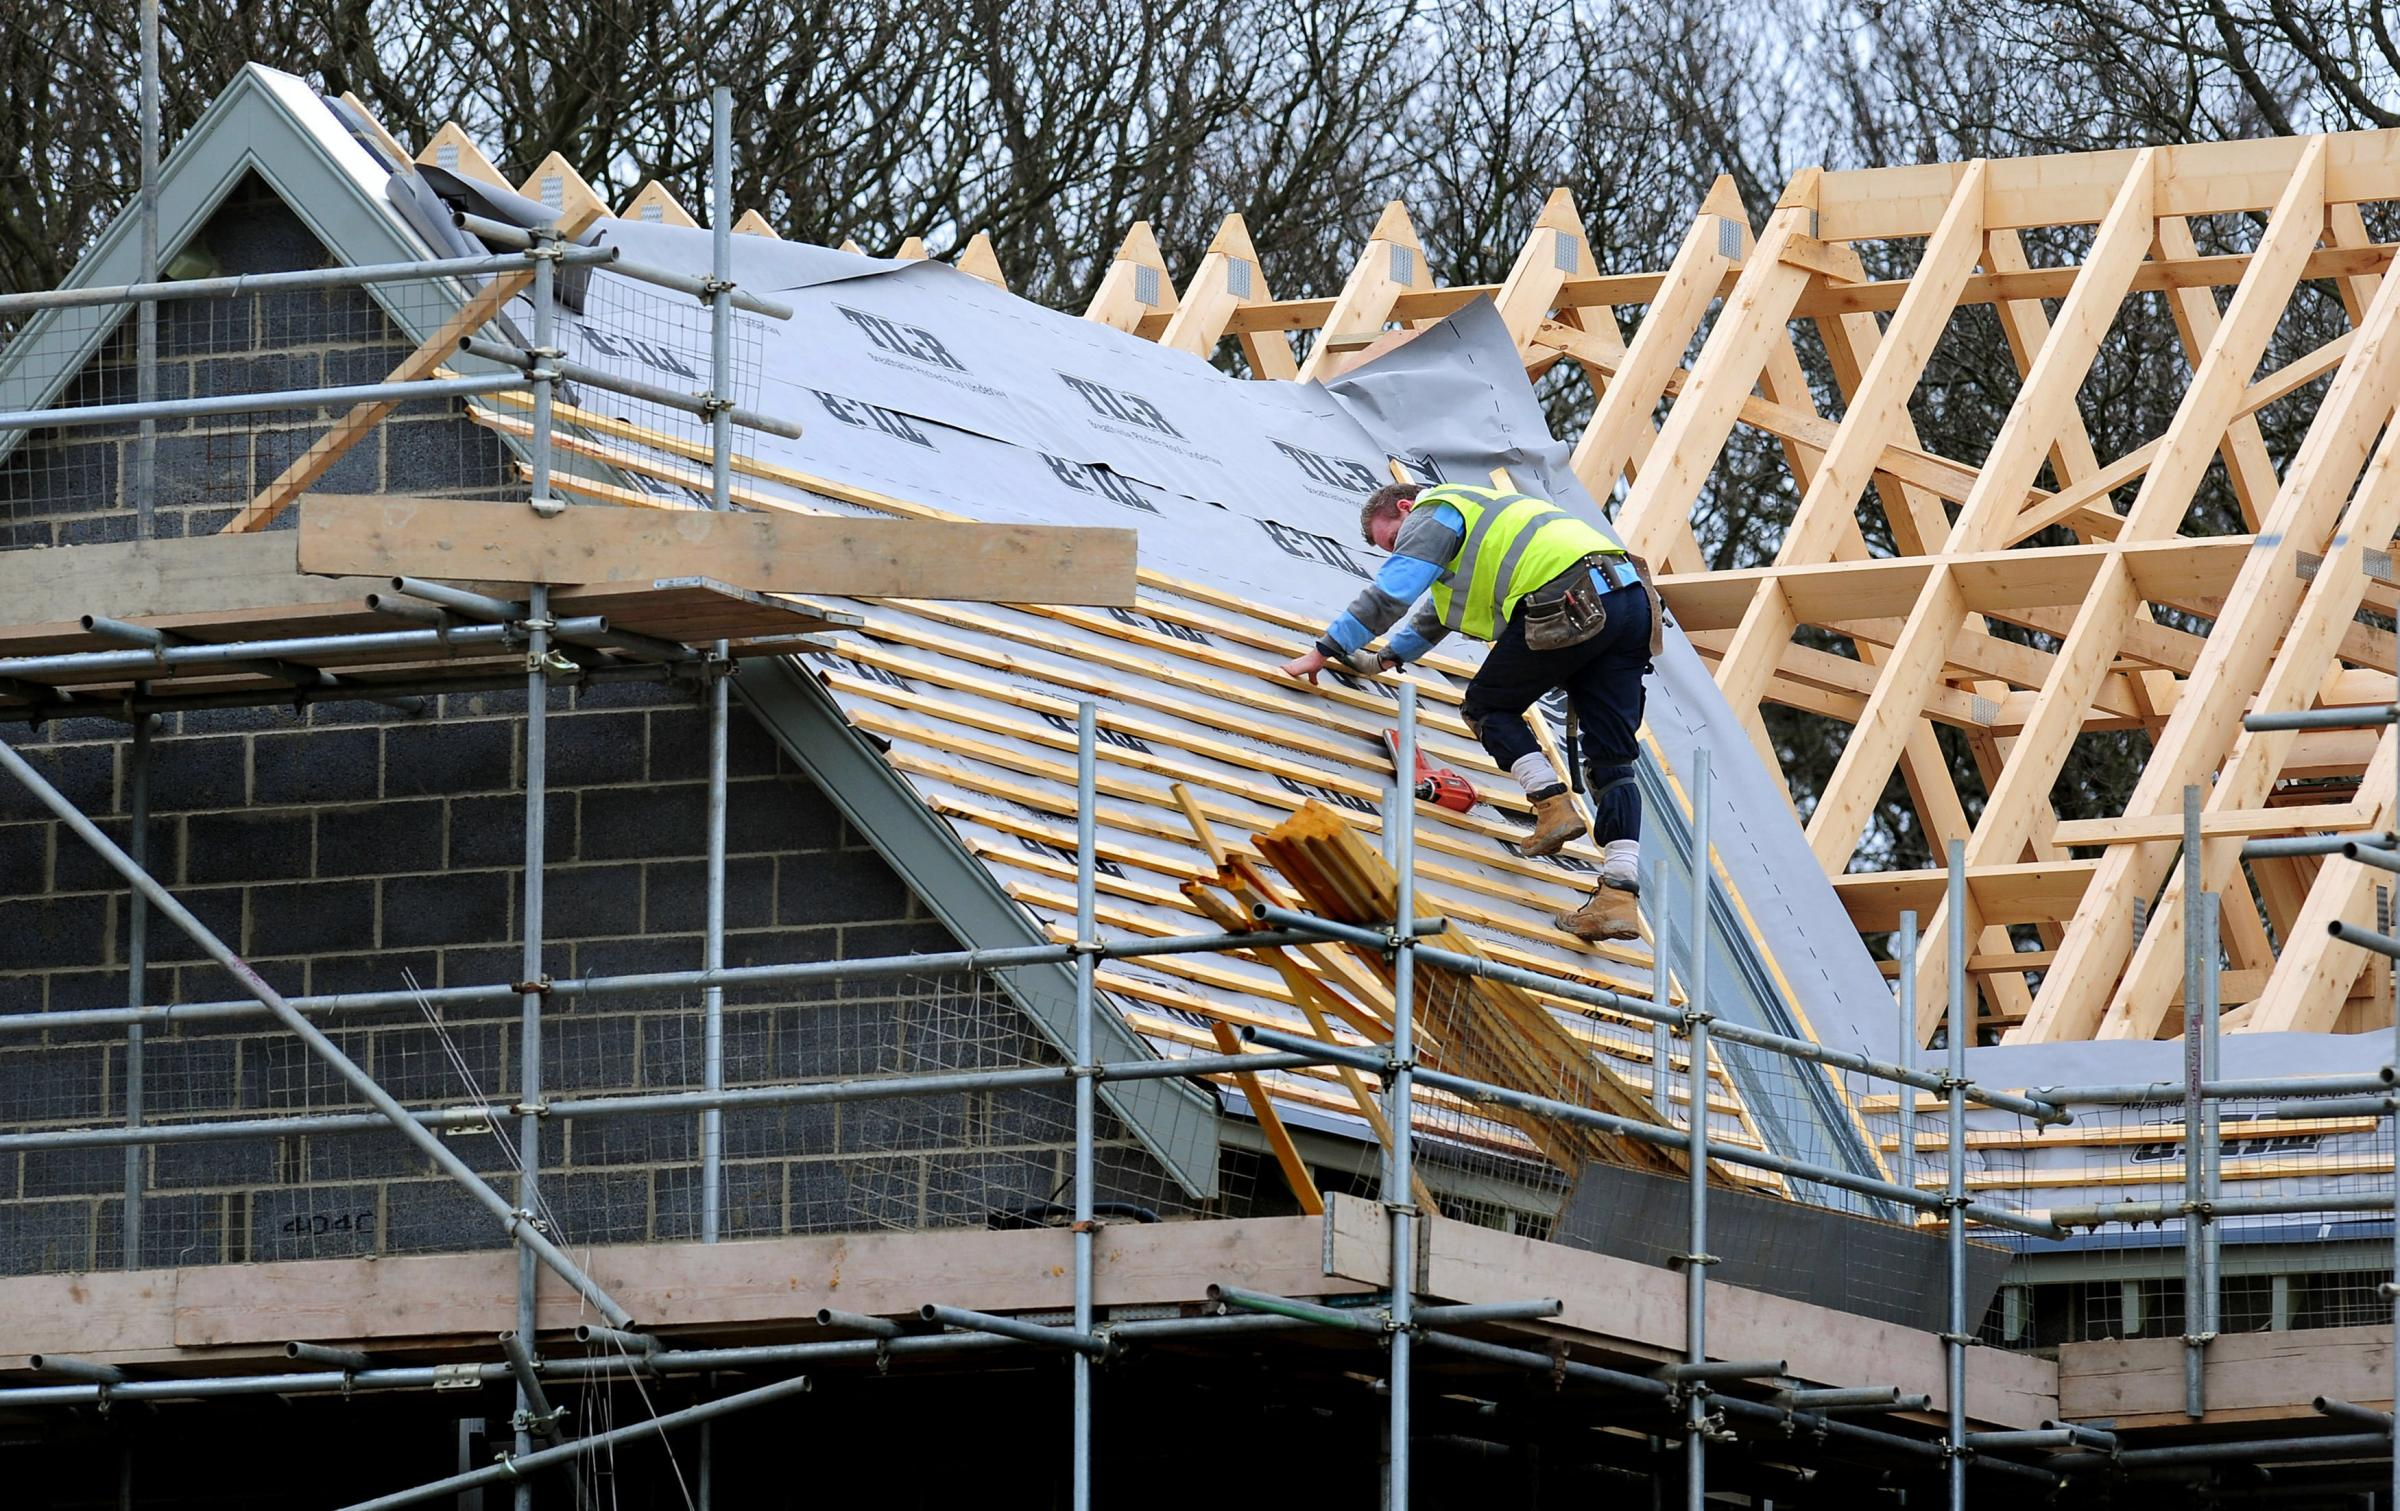 CONSTRUCTION: Hundreds of new homes are being built across Hambleton and South Tees. Picture: Rui Vieira/PA Wire